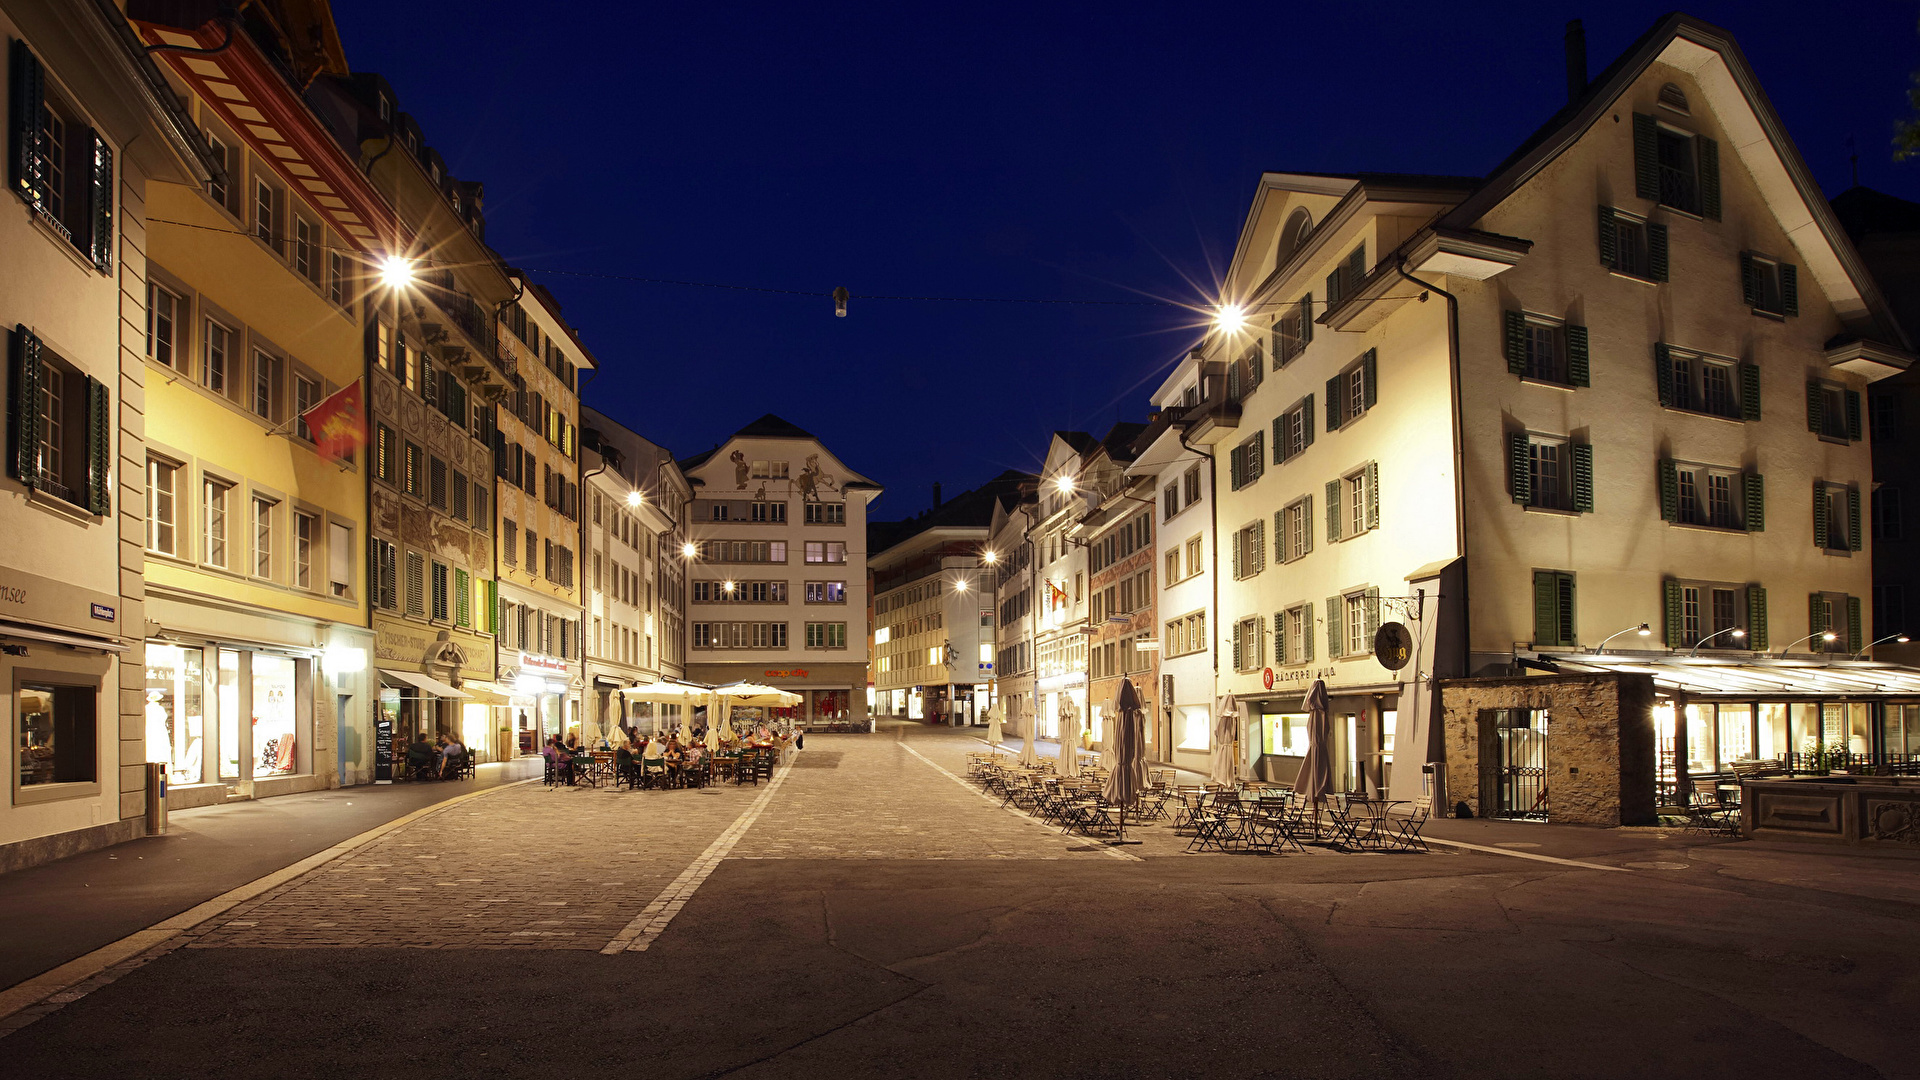 Photos Switzerland Town square Lucern Mahlen Square Street Night Street lights Houses Cities 1920x1080 night time Building